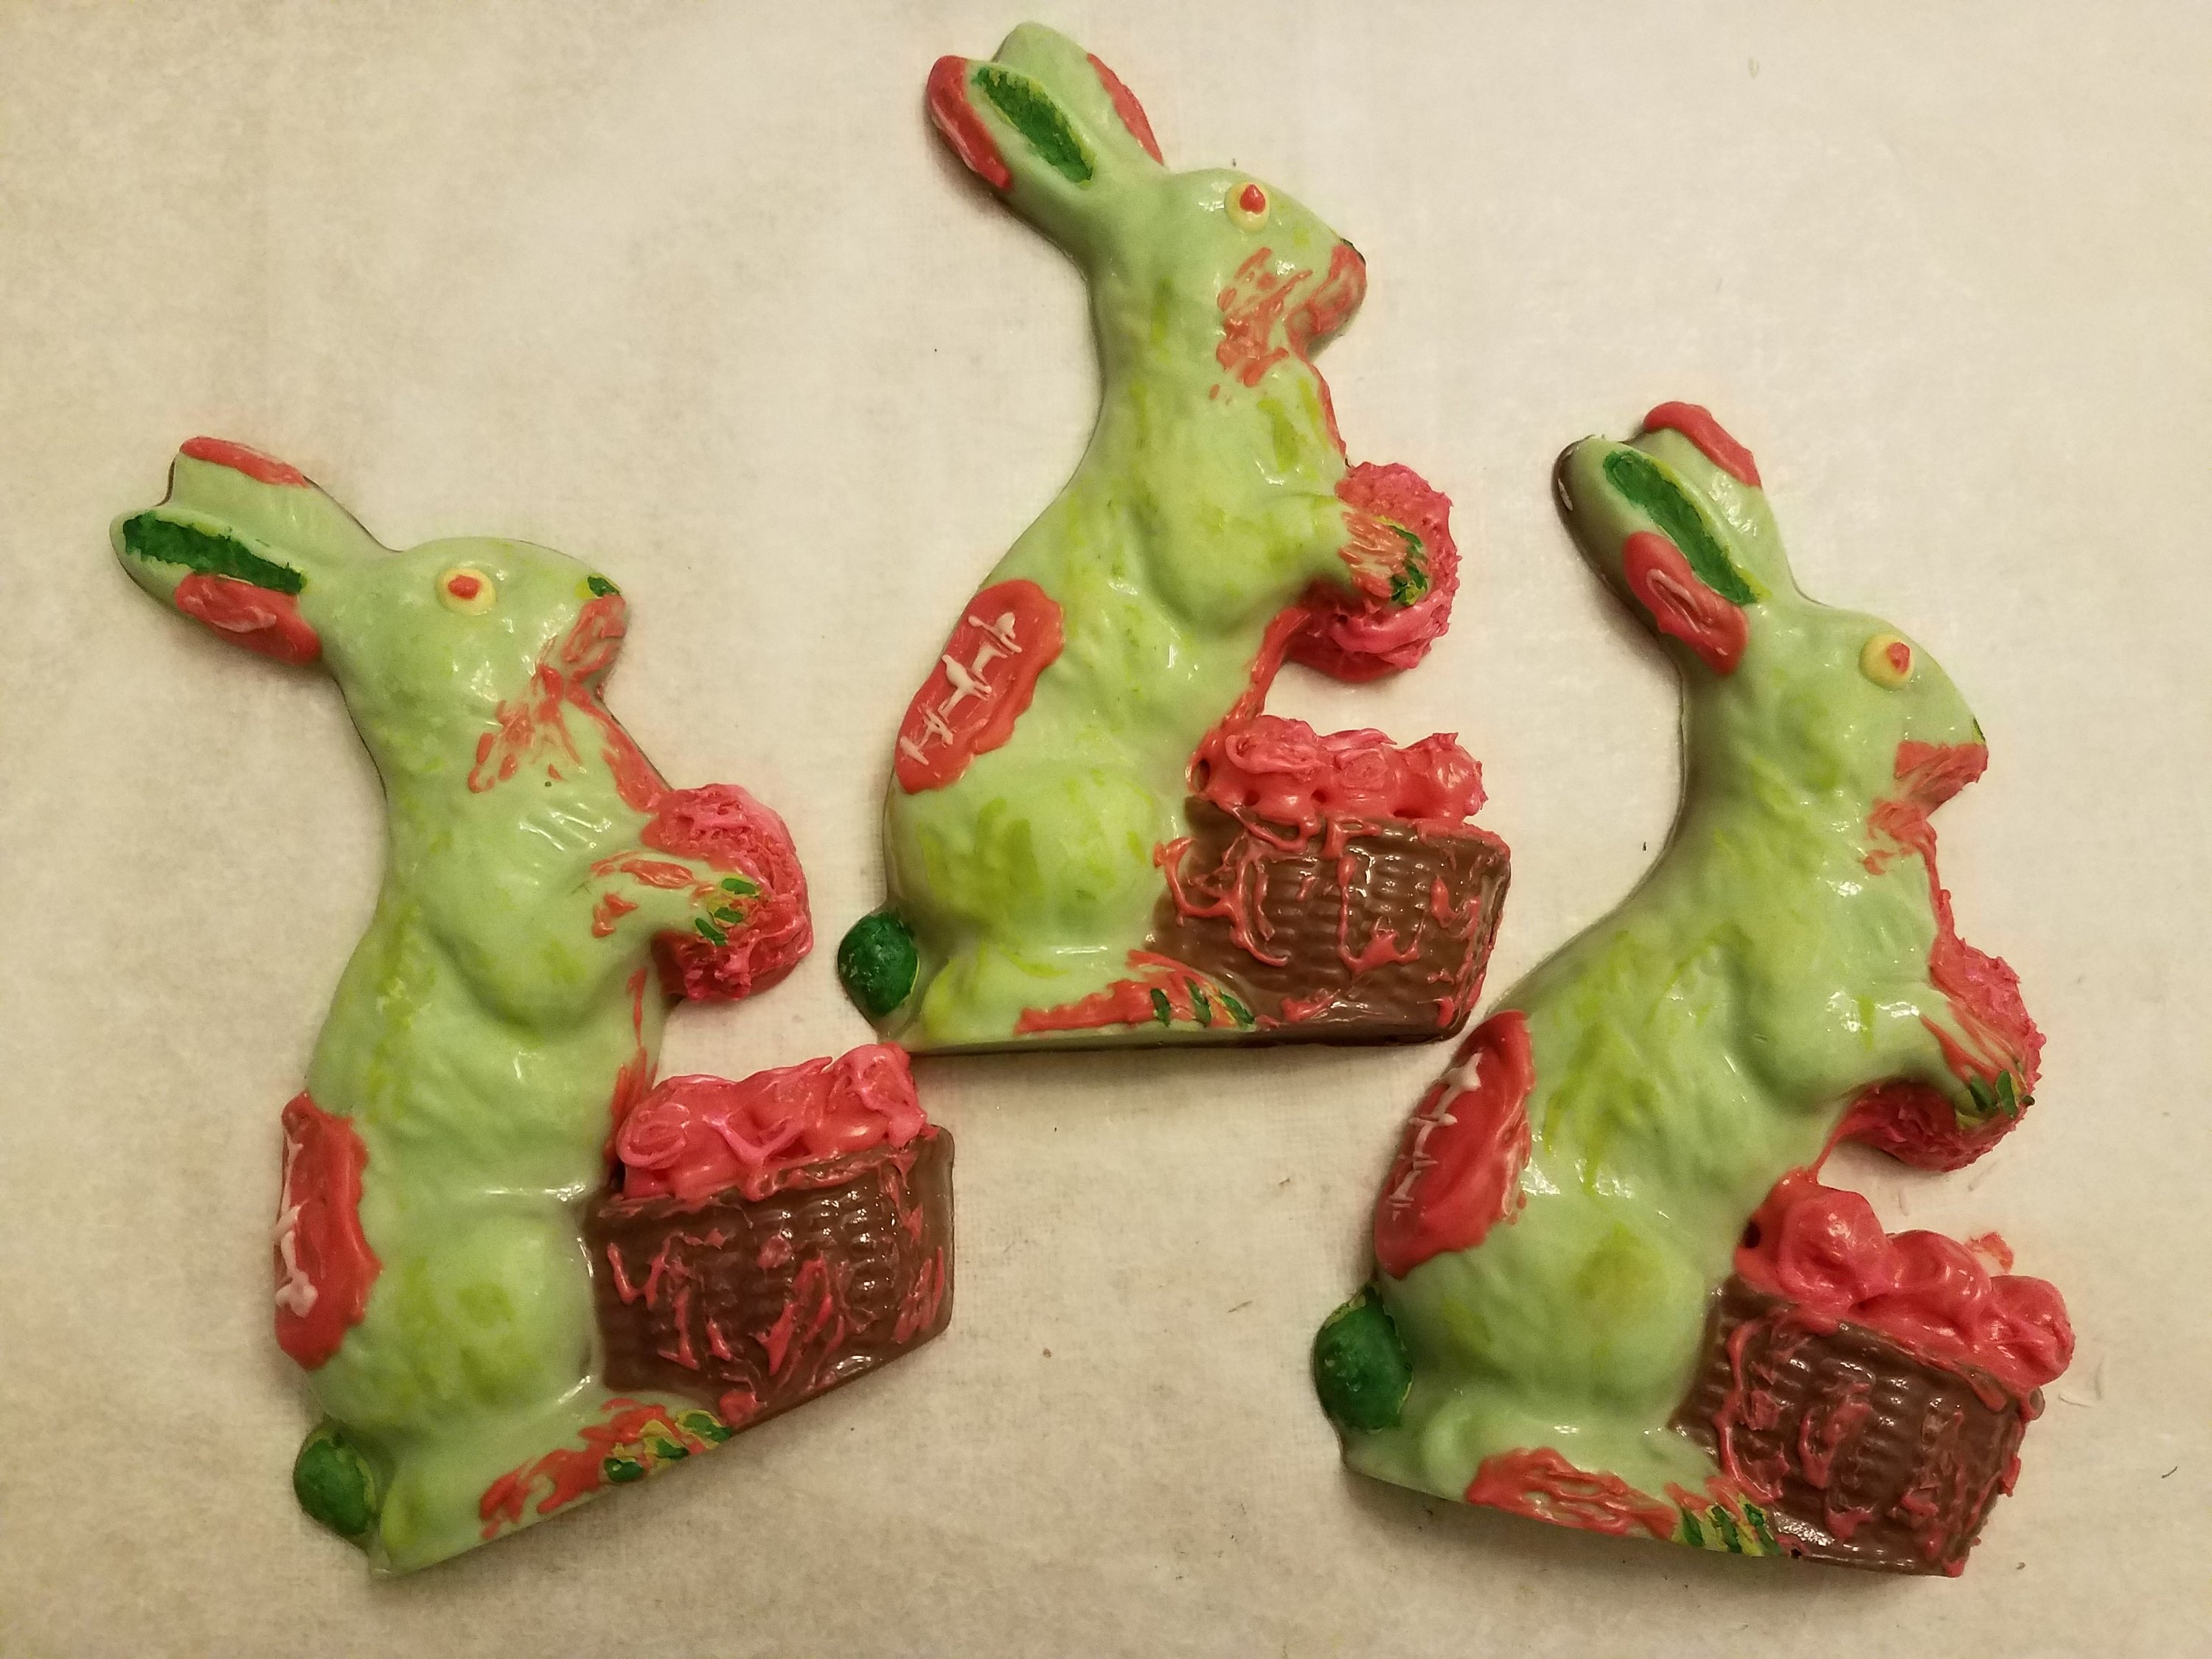 Zombie bunny chocolates